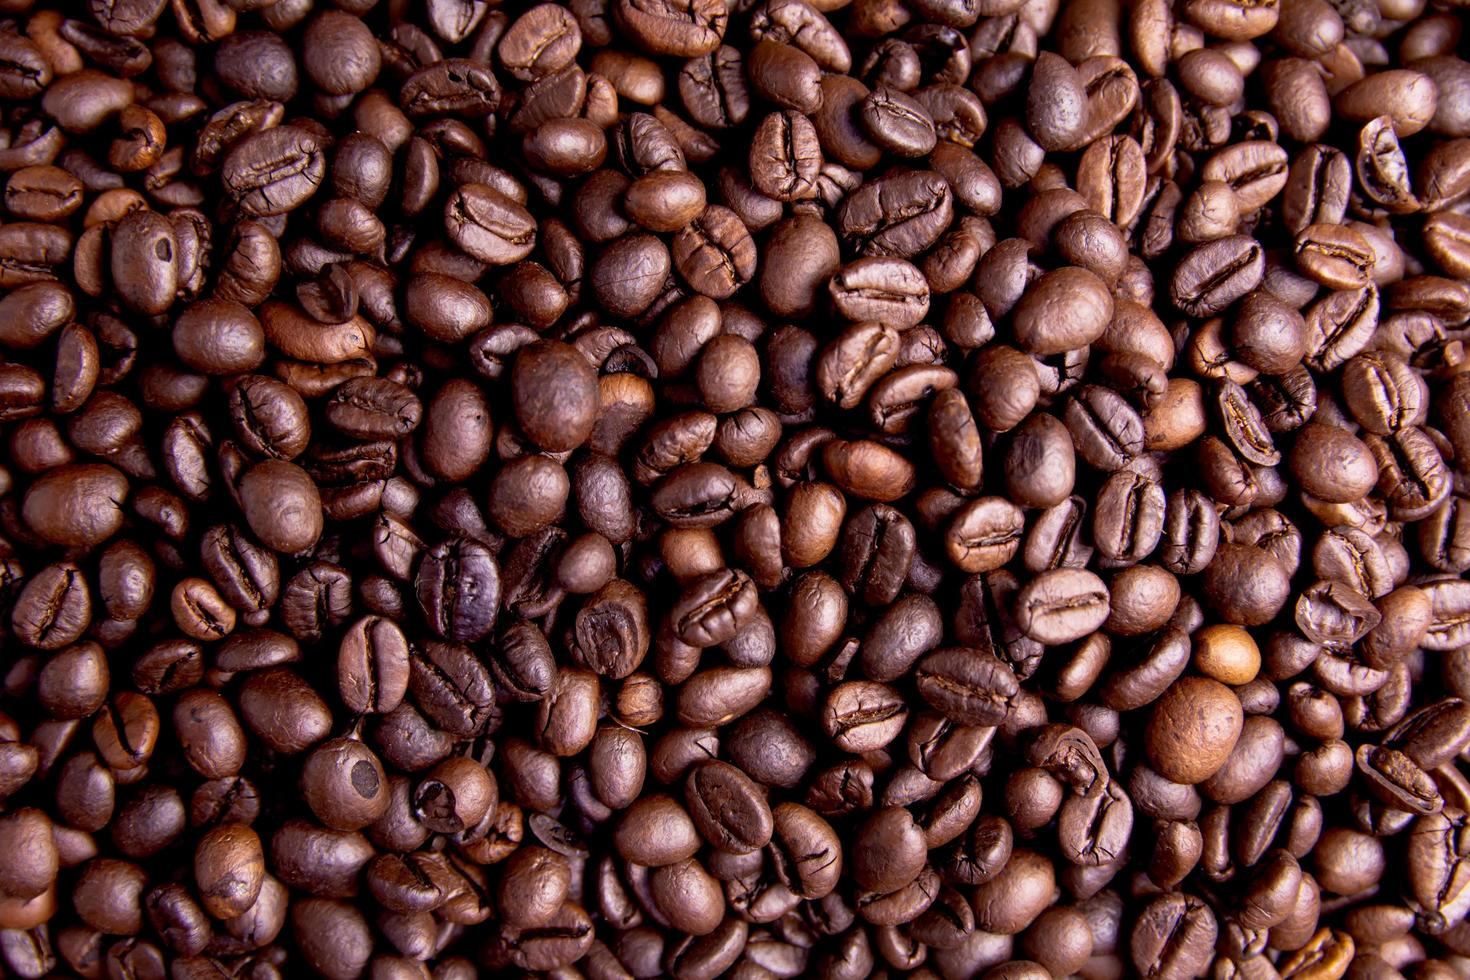 Close-up of coffee beans photo